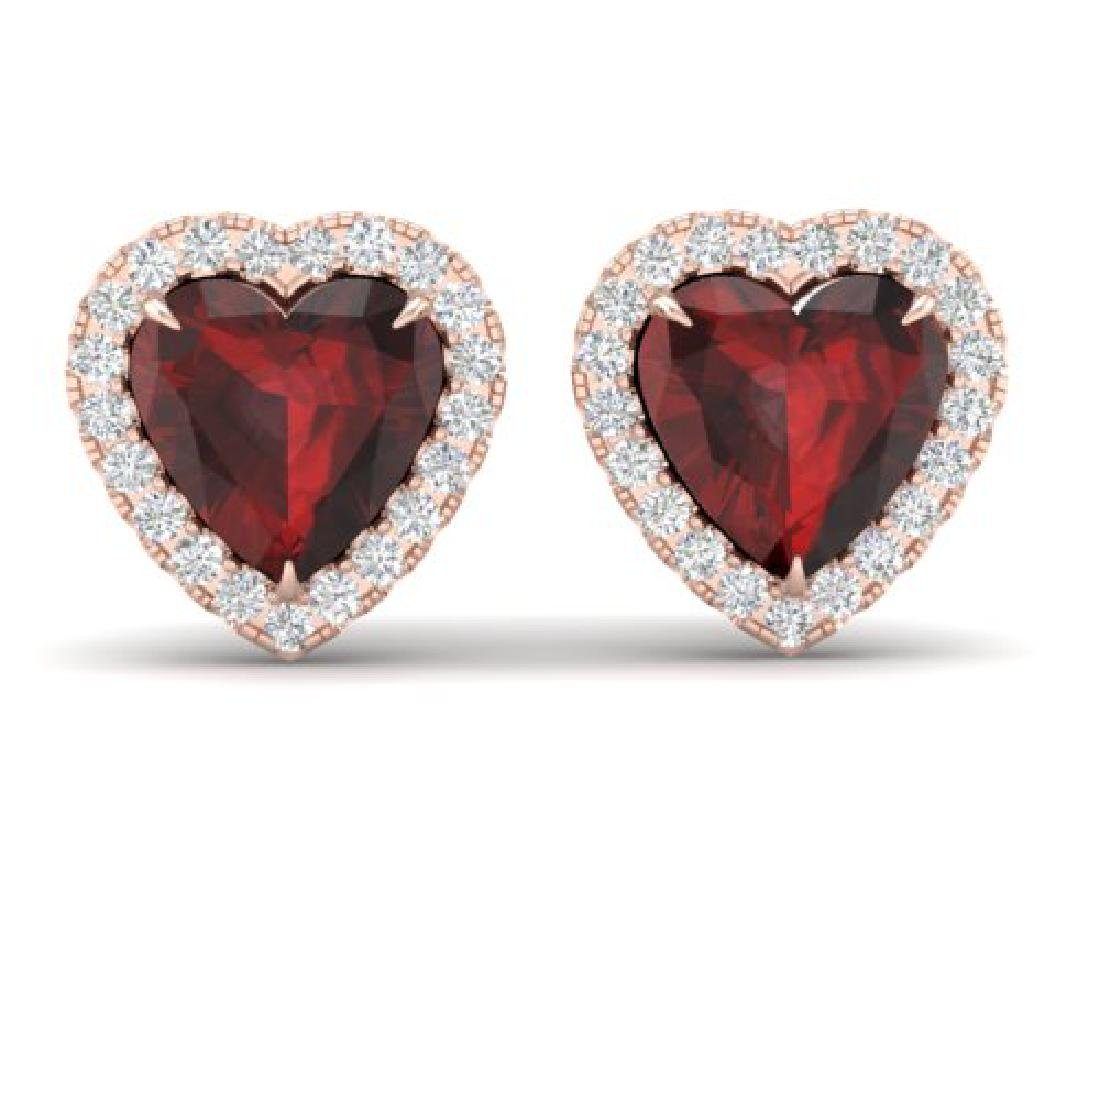 2.22 CTW Garnet & Micro Pave VS/SI Diamond Earrings